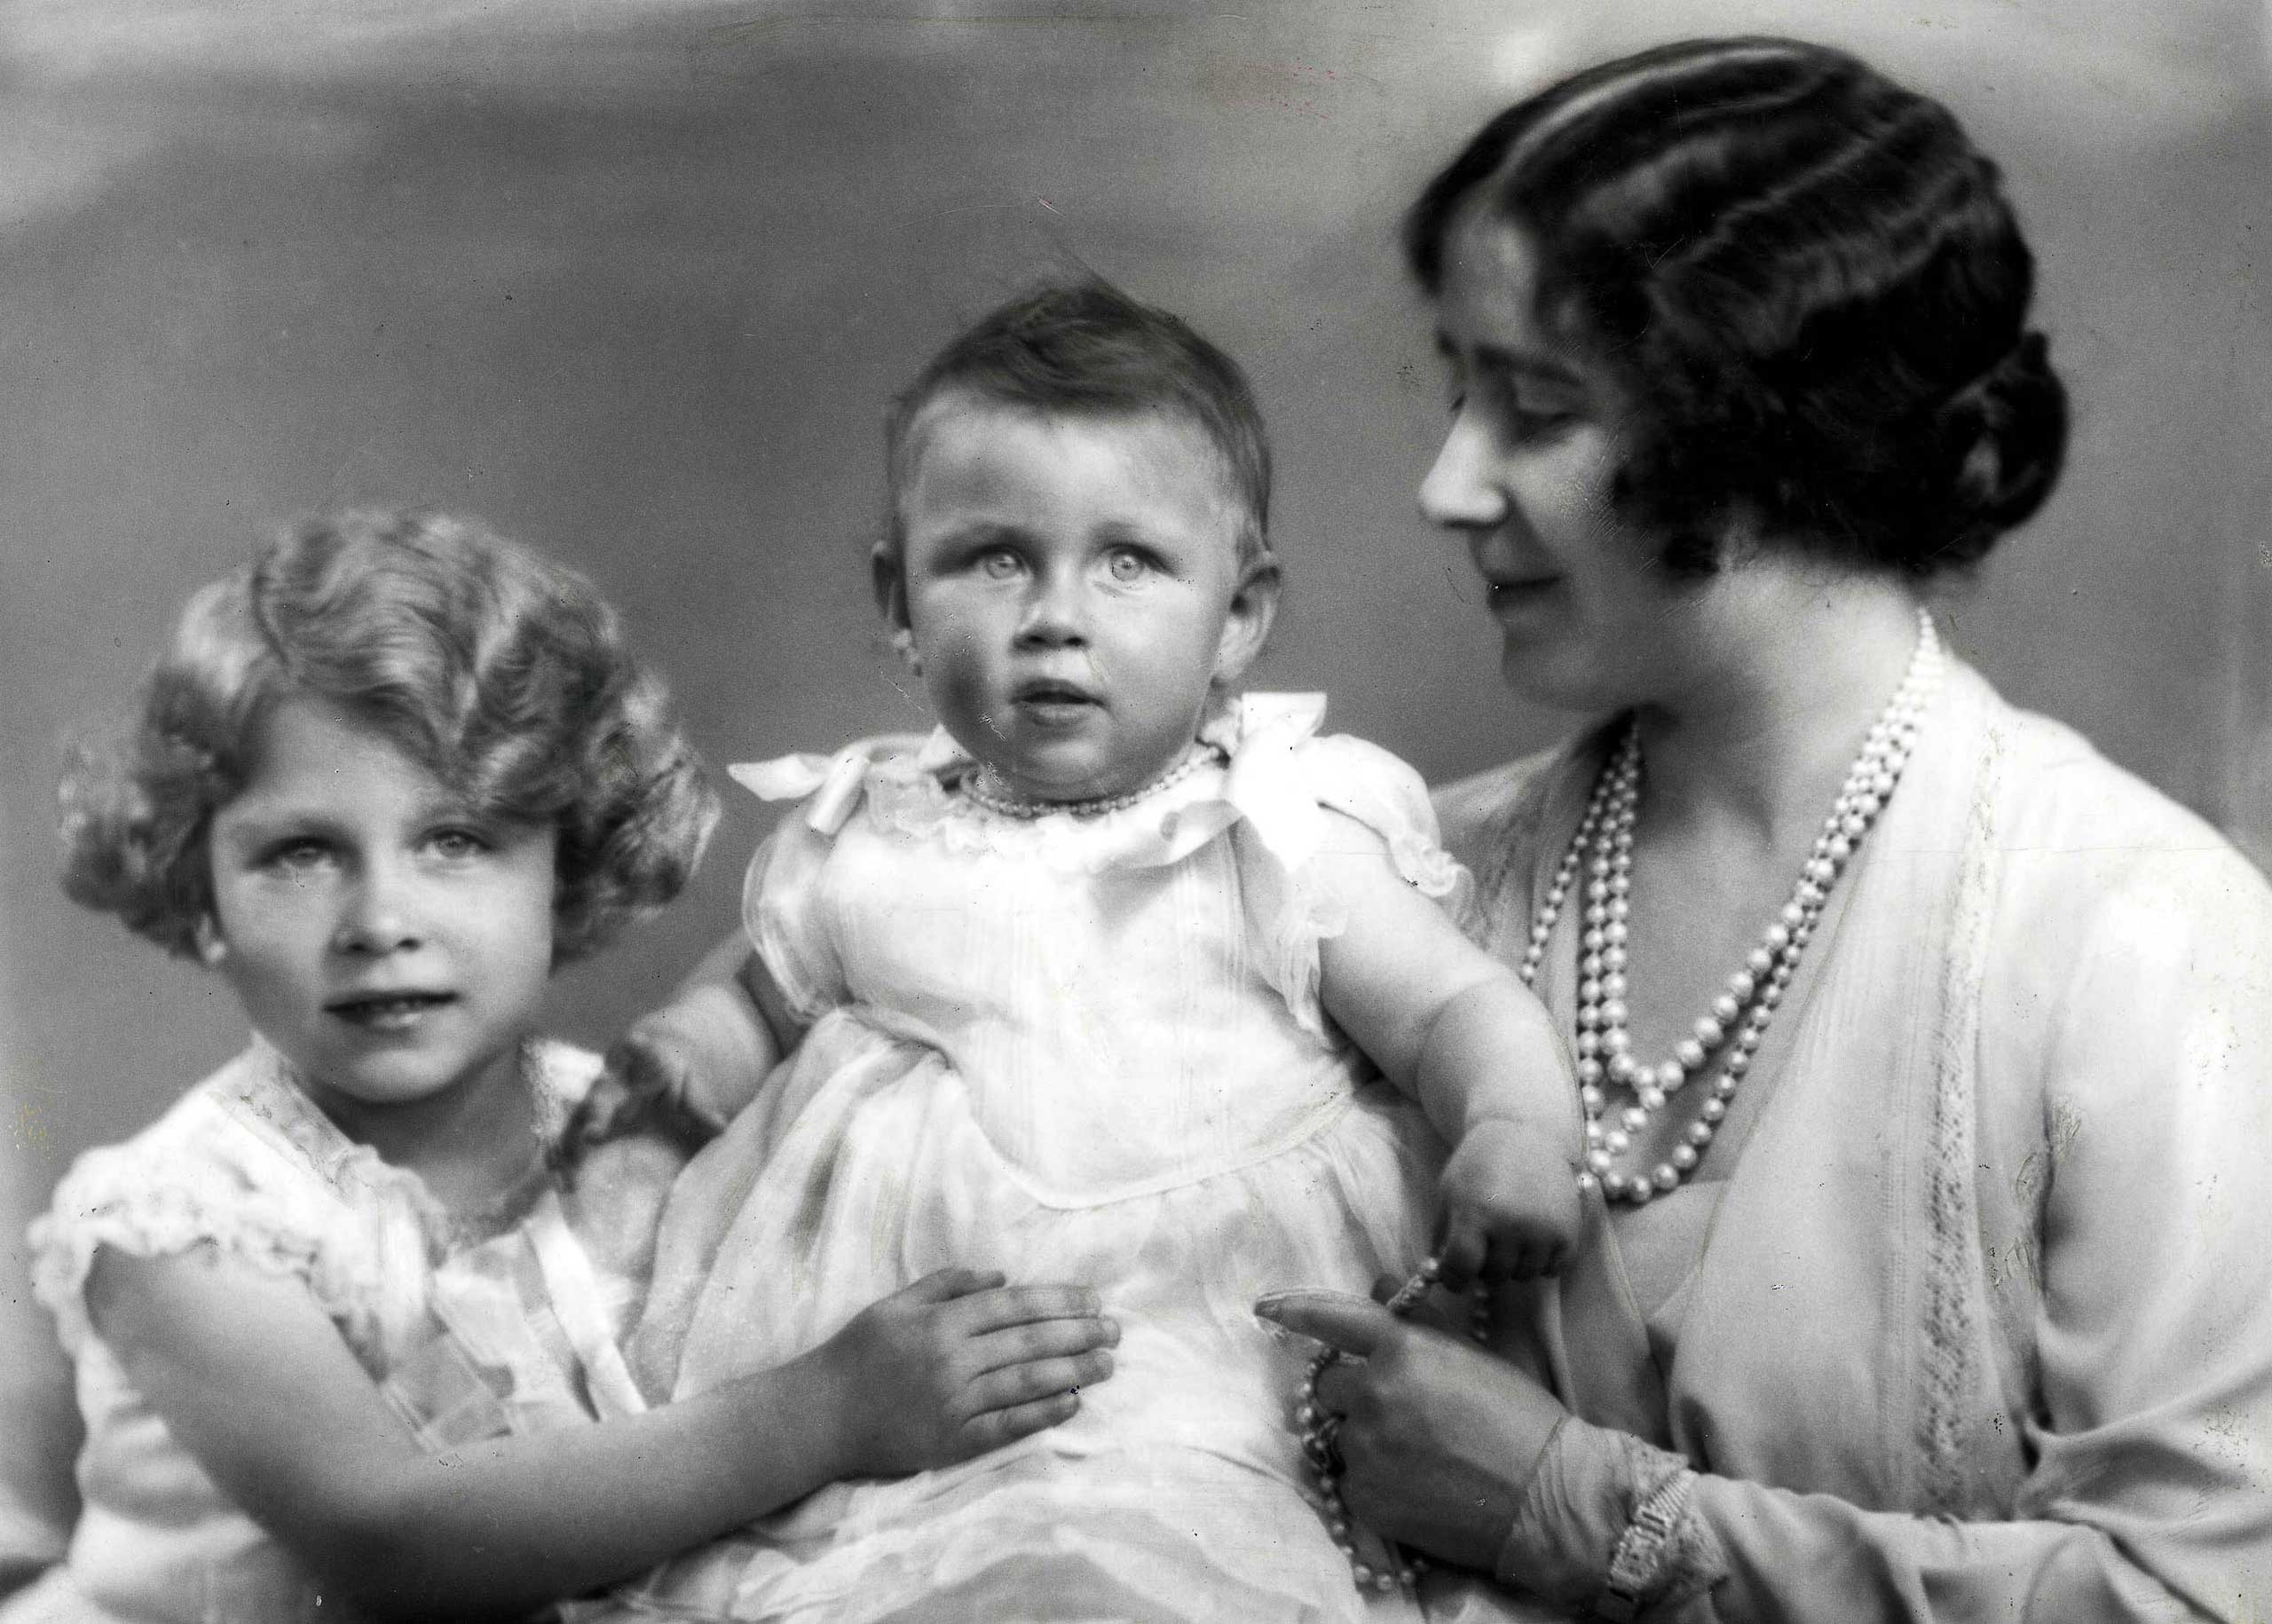 The naughty sister: the baby Princess Margaret, flanked by Princess Elizabeth and their mother, led a colorful life. Prevented from marrying her first love, a divorced commoner, she later married, and divorced, fashionable photographer Antony Armstrong-Jones.